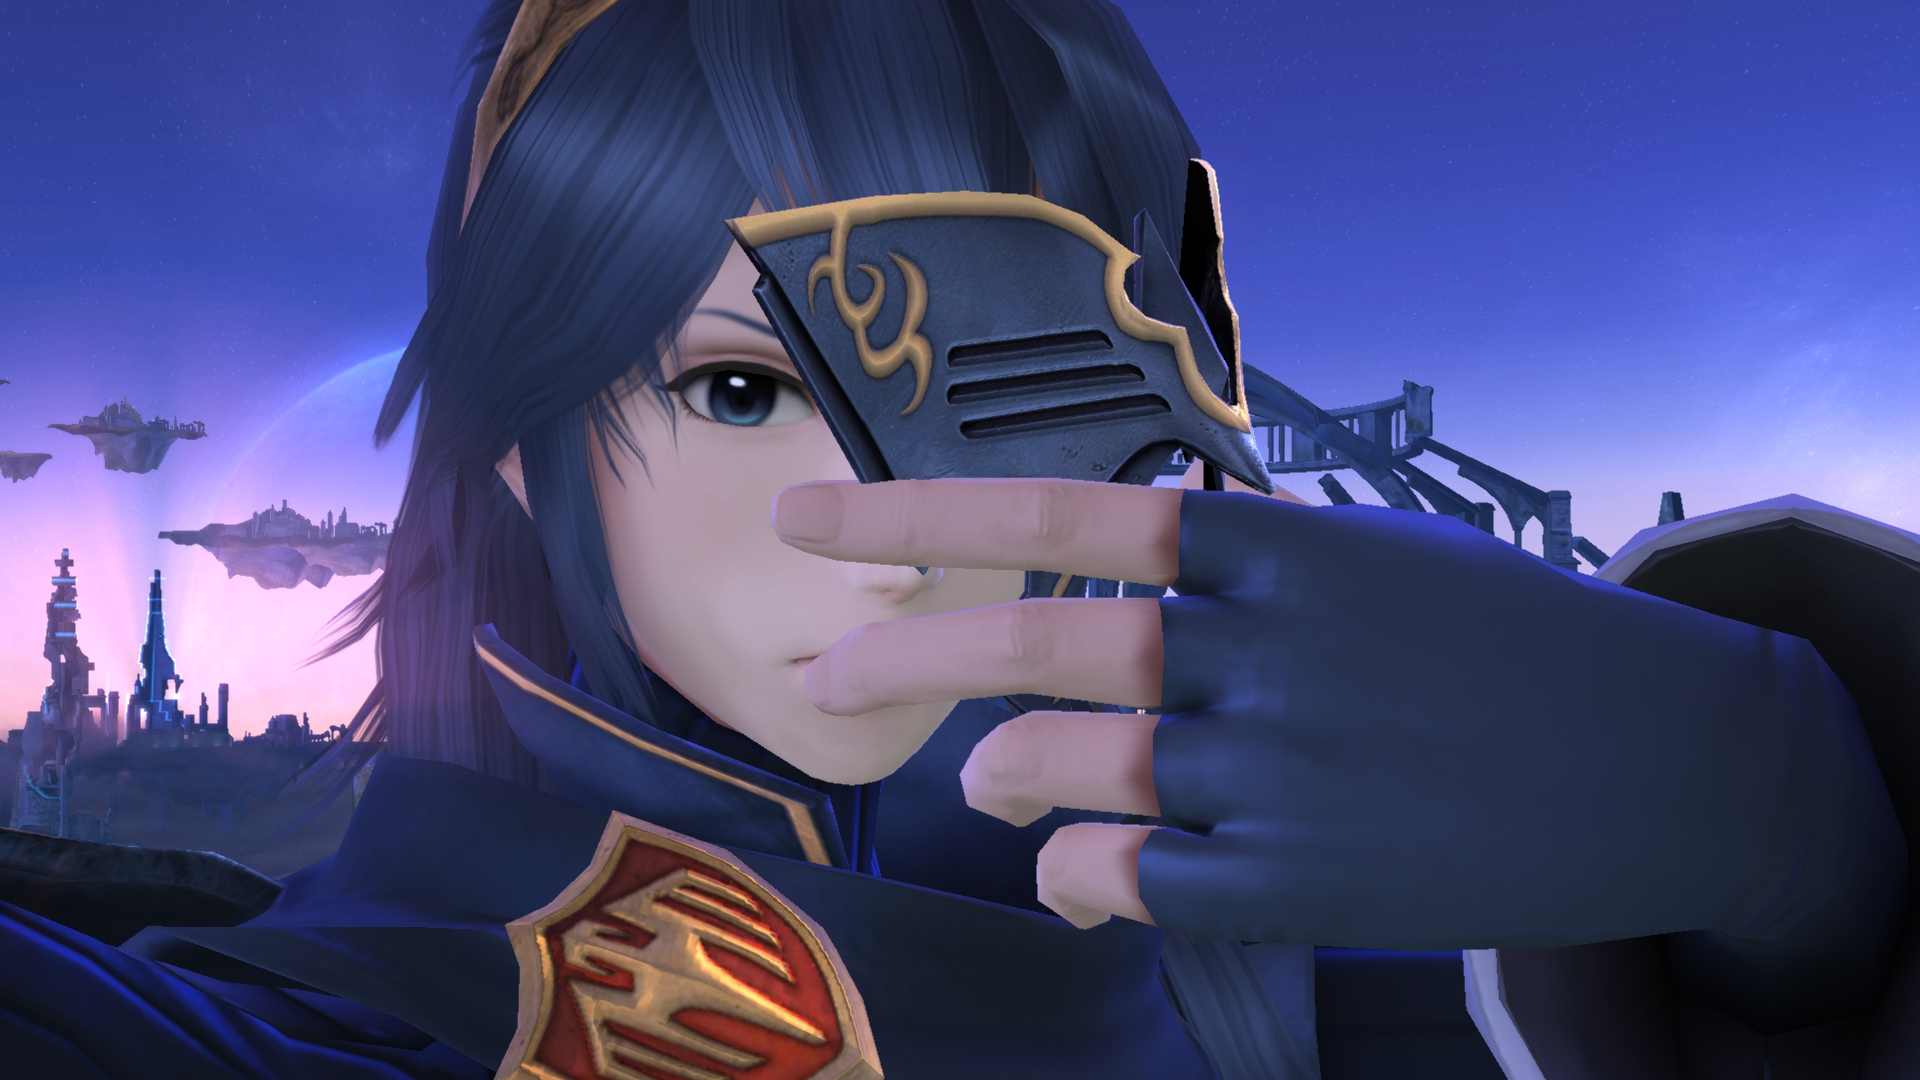 super smash bros for nintendo 3ds and wii u screen 3 Super Smash Bros. For Nintendo 3DS & Wii U New Screenshots & Trailer Reveal Lucina, Robin, & Captain Falcon